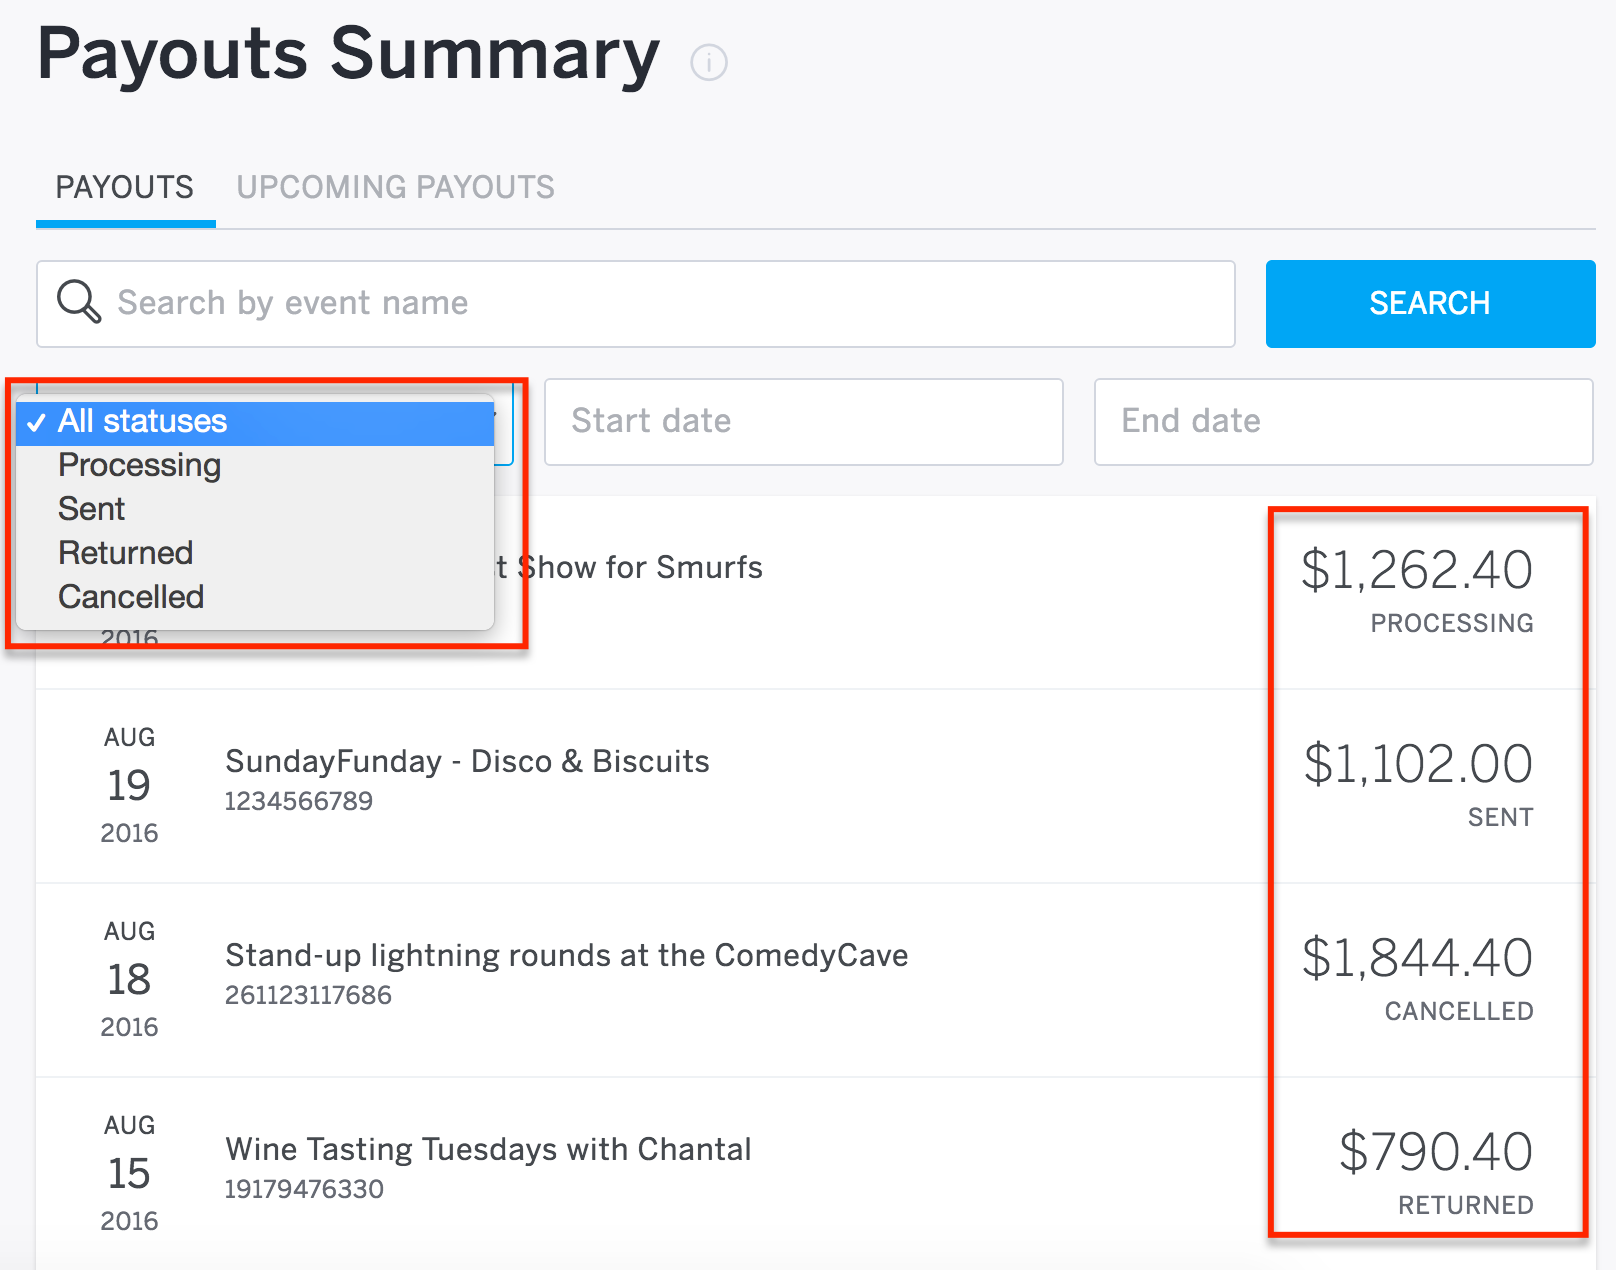 How to see the status of your payout | Eventbrite Help Center